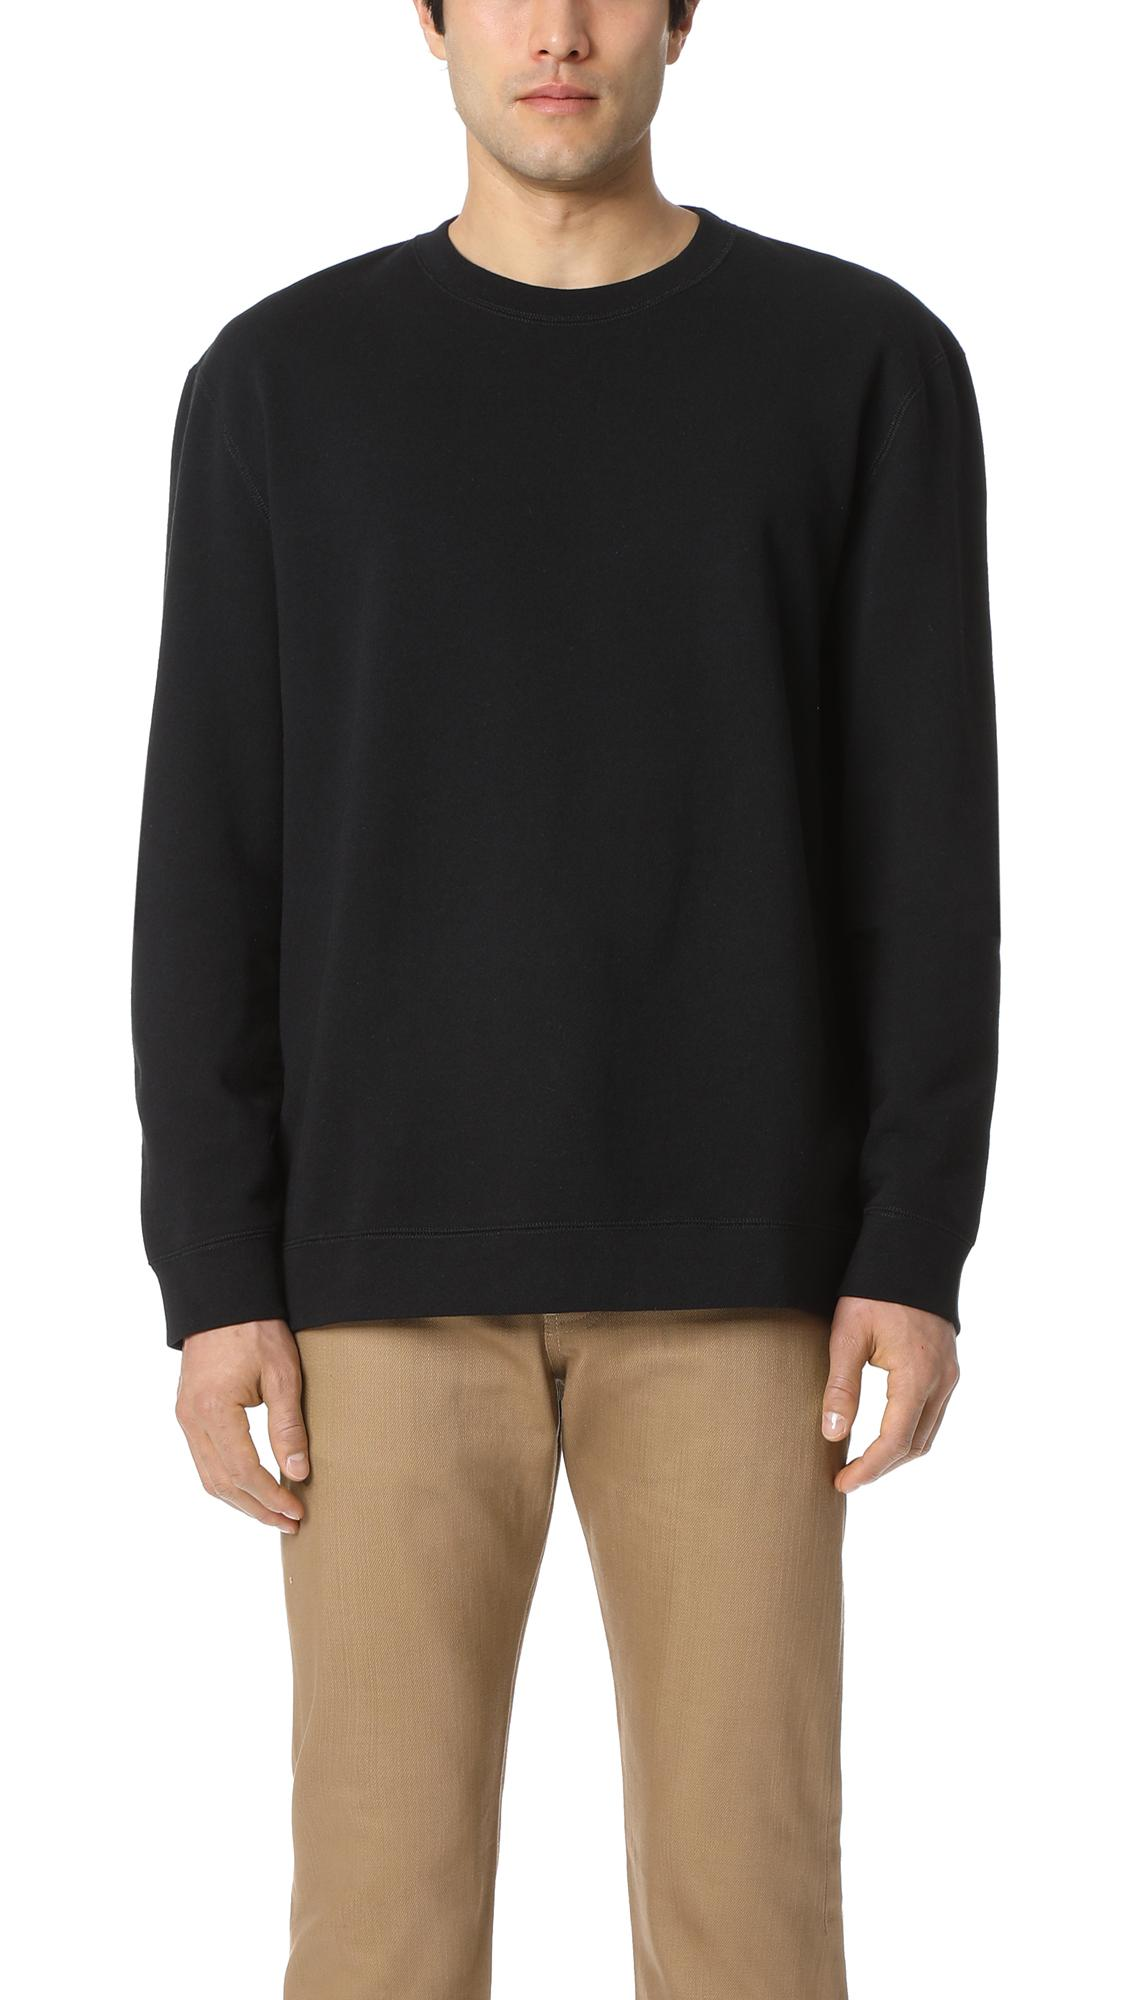 Naked  Famous Slim Crew - French Terry Black Sweatshirt  Modesens-3150